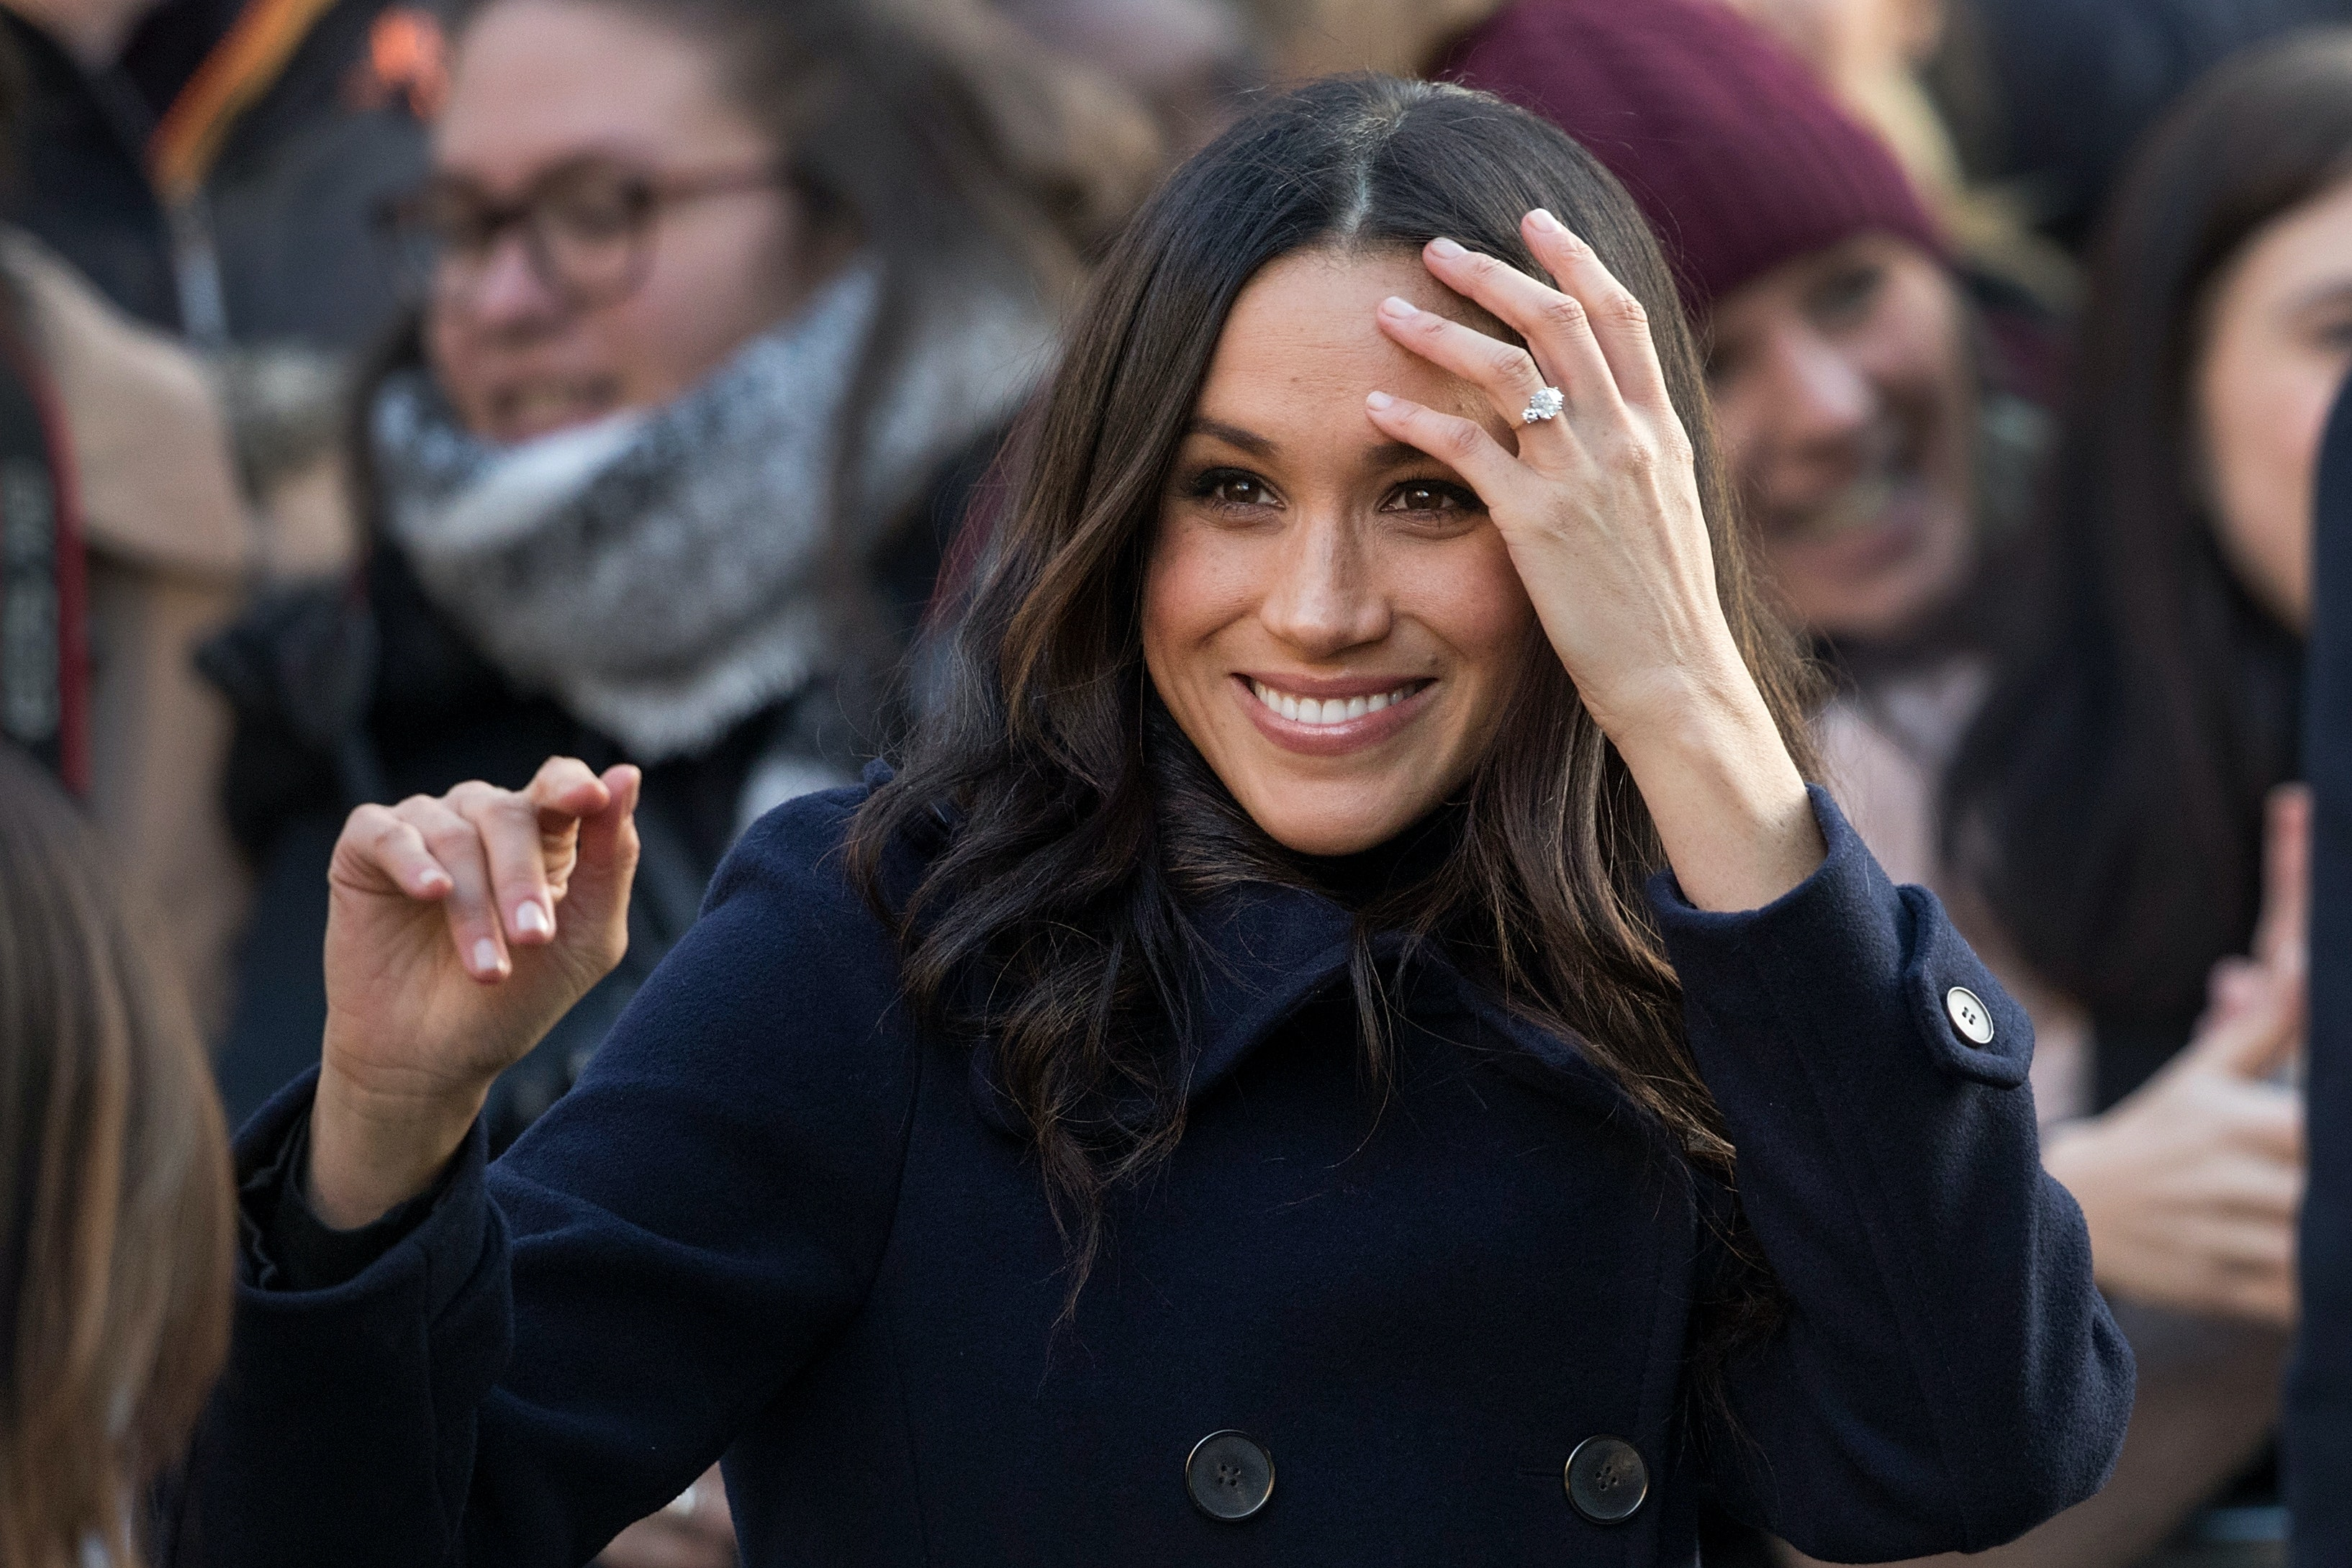 Was Meghan Markle trolled by royal family member wearing racist jewelry?